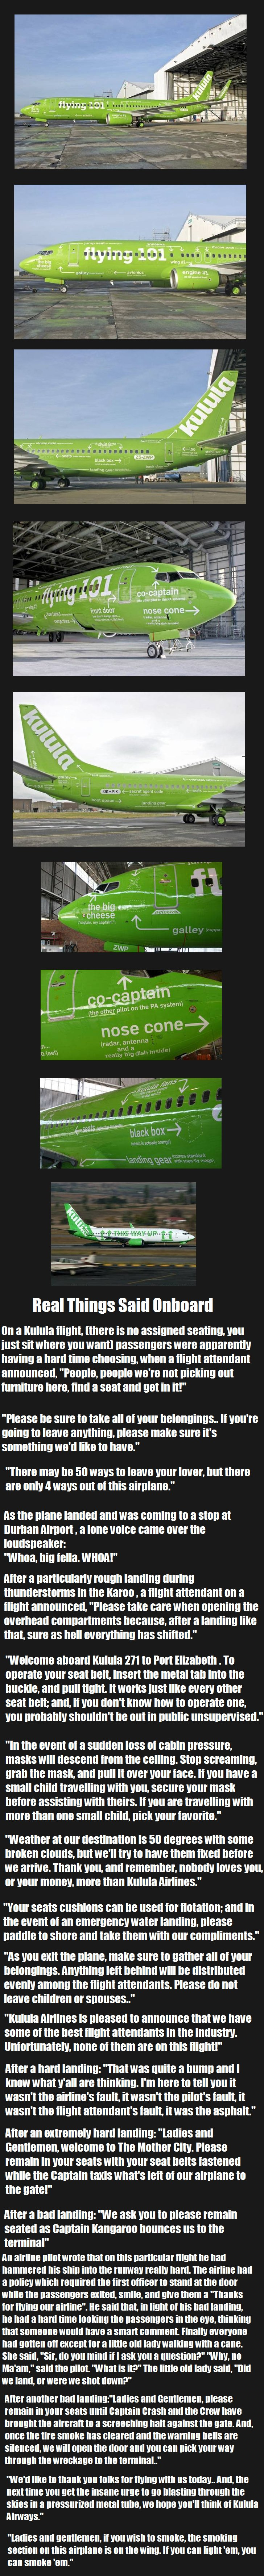 Kulula Airways long but worth it. Kulula is a low-cost South-African airline that doesn't take itself too seriously. inb4 tl;dr inb4 OP can't inb4.. Everybody in that company is stoned as .